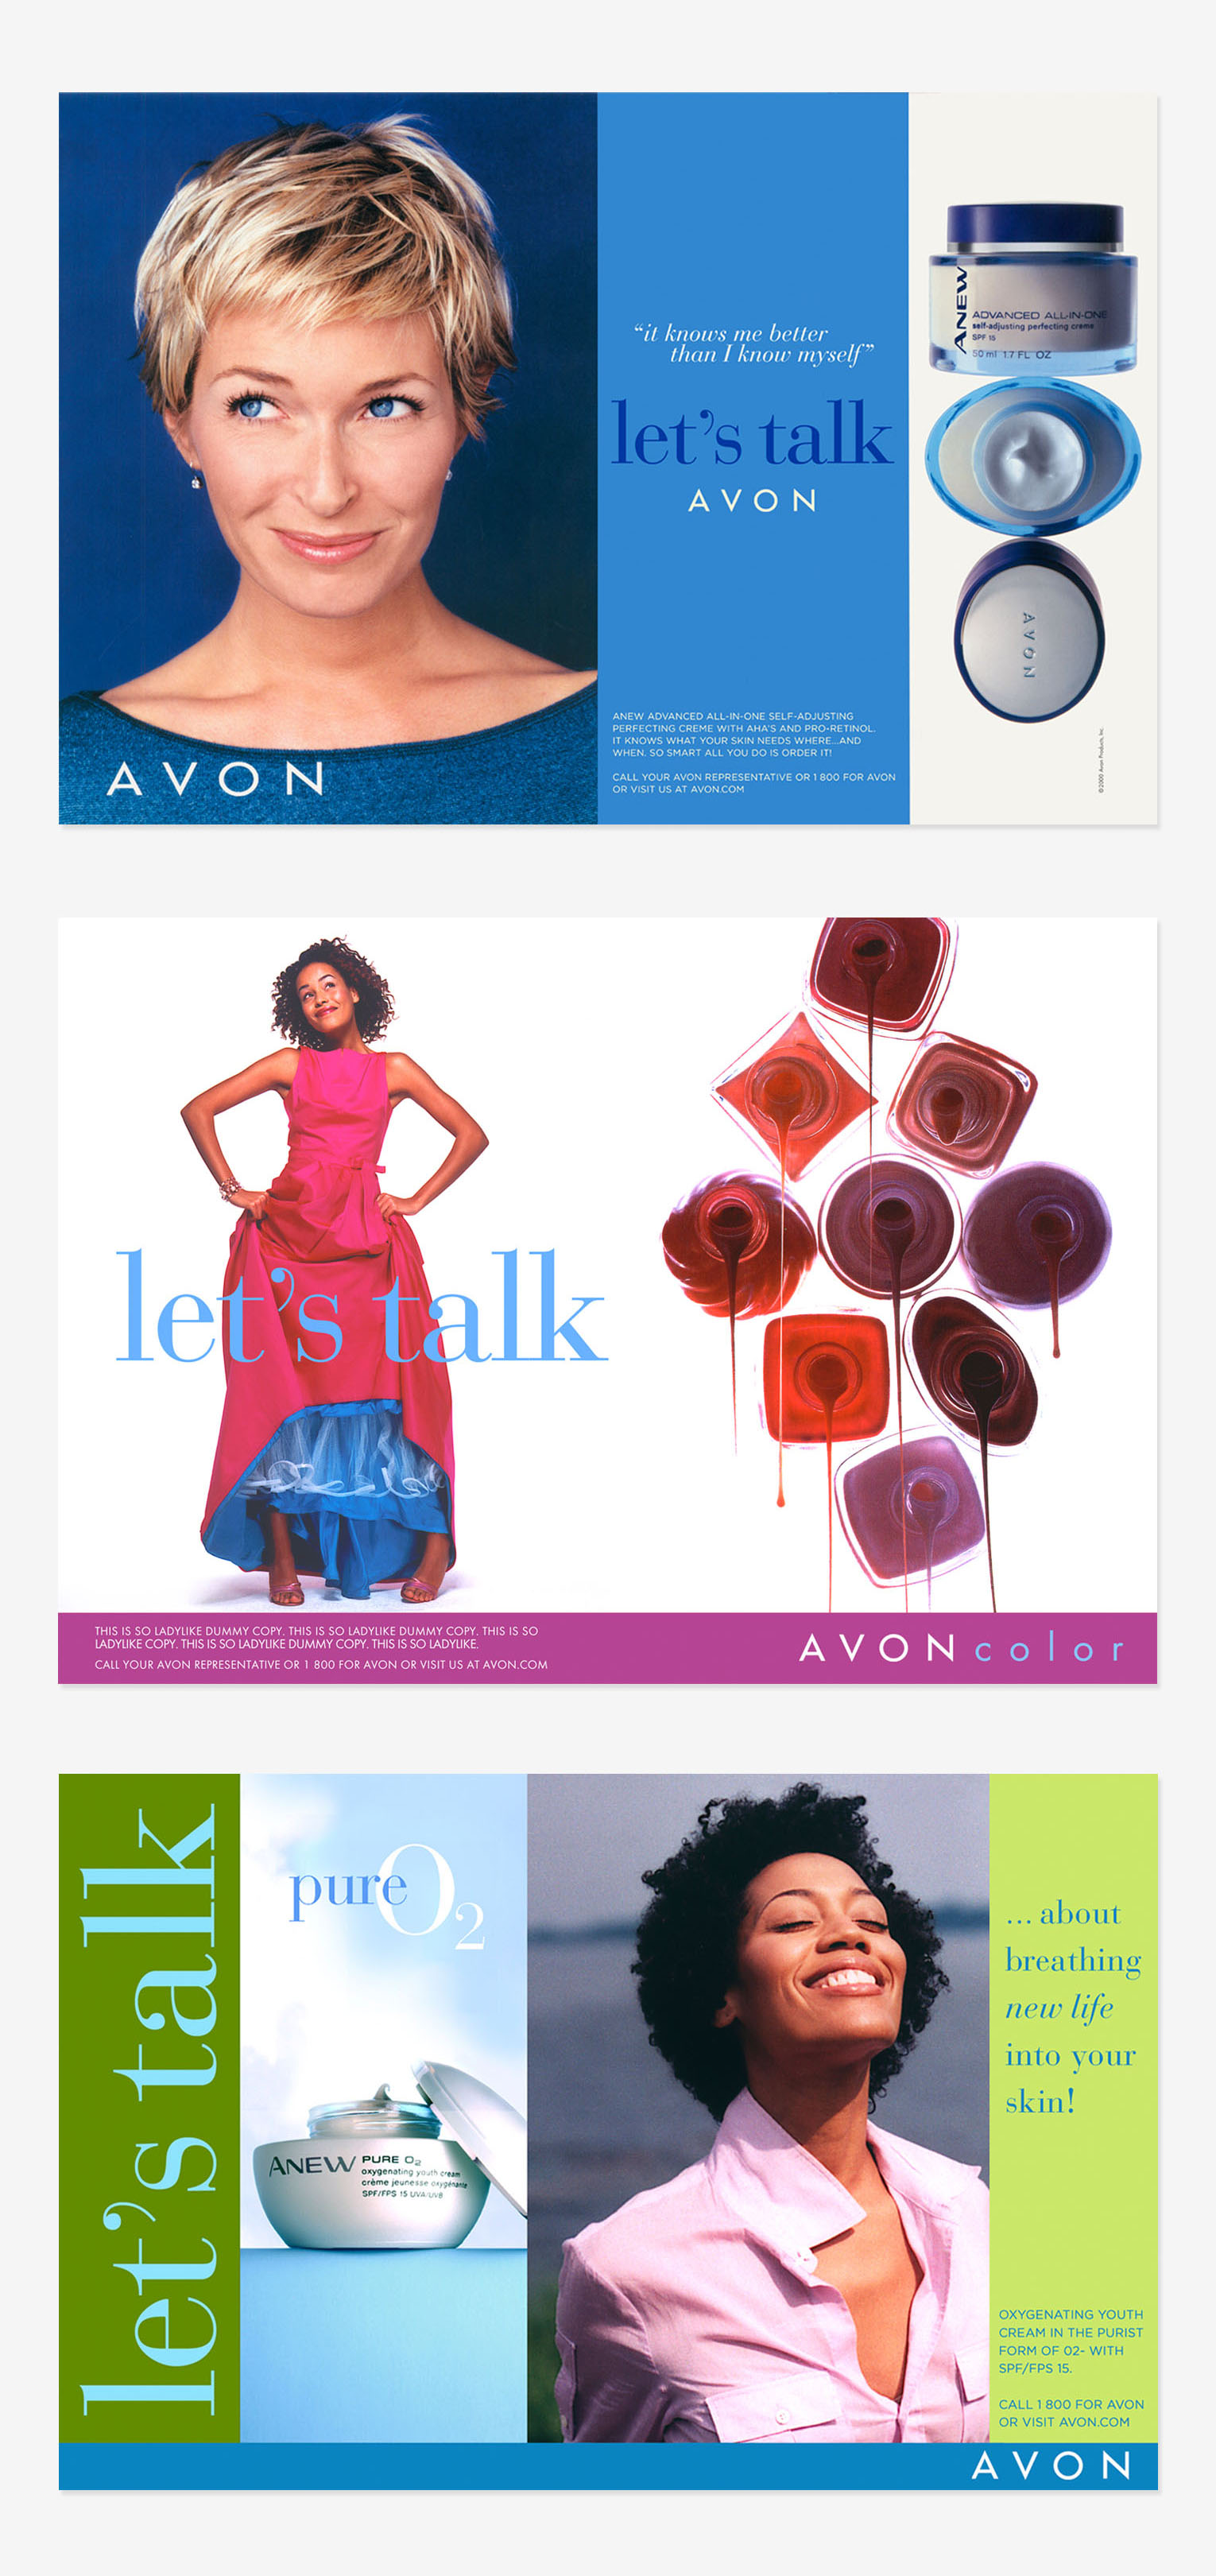 avon_long_middle_printads.jpg